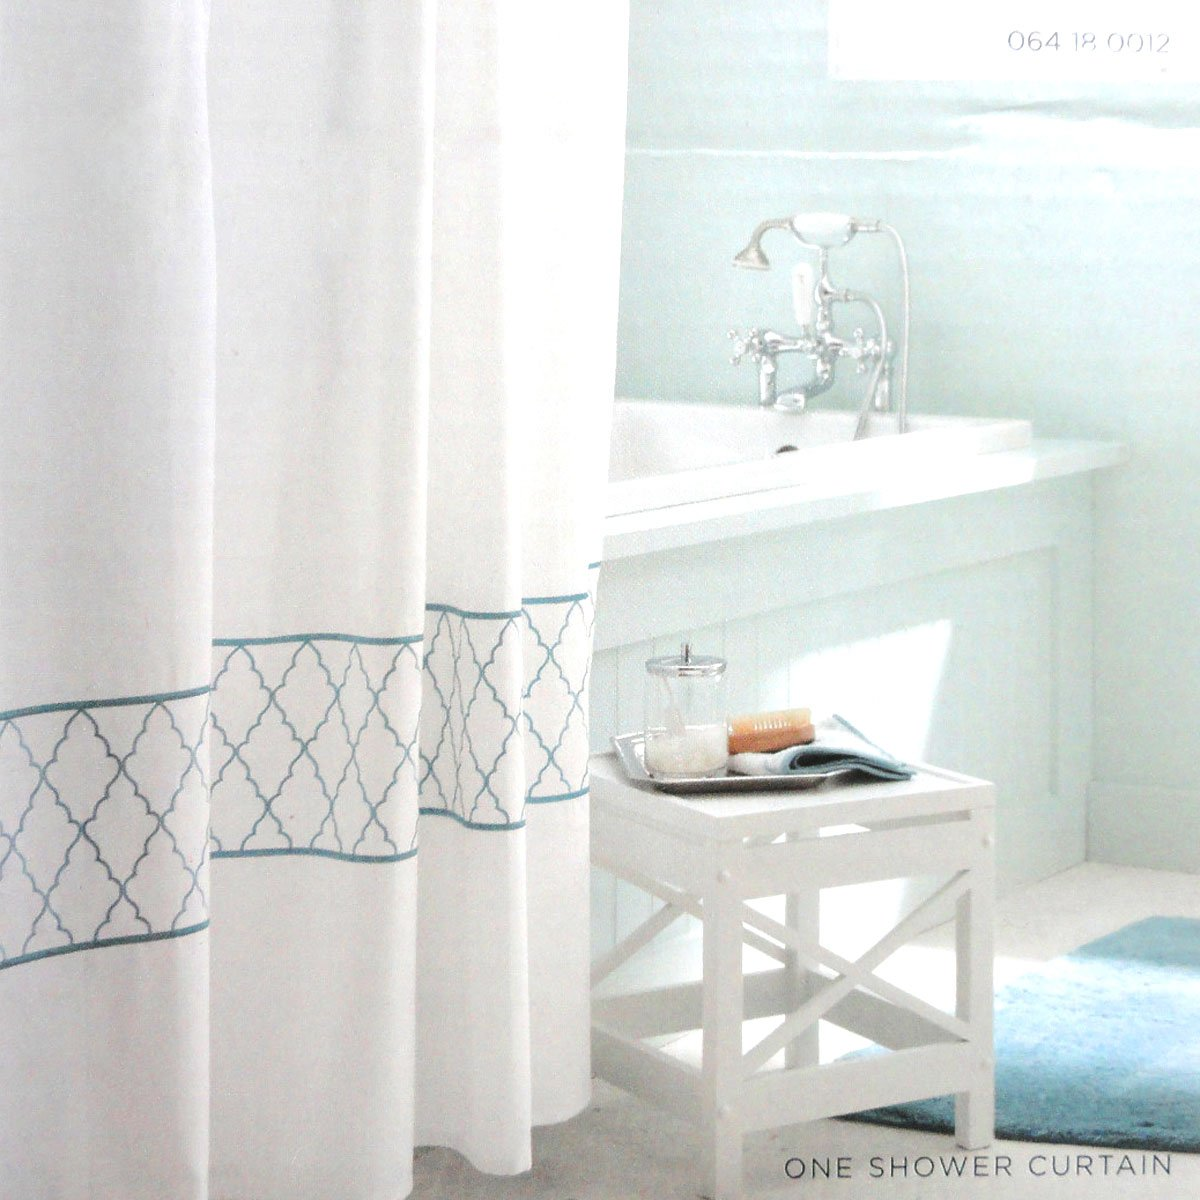 Target Home EMBROIDERED OGEE Fabric Shower Curtain Blue Aqua White